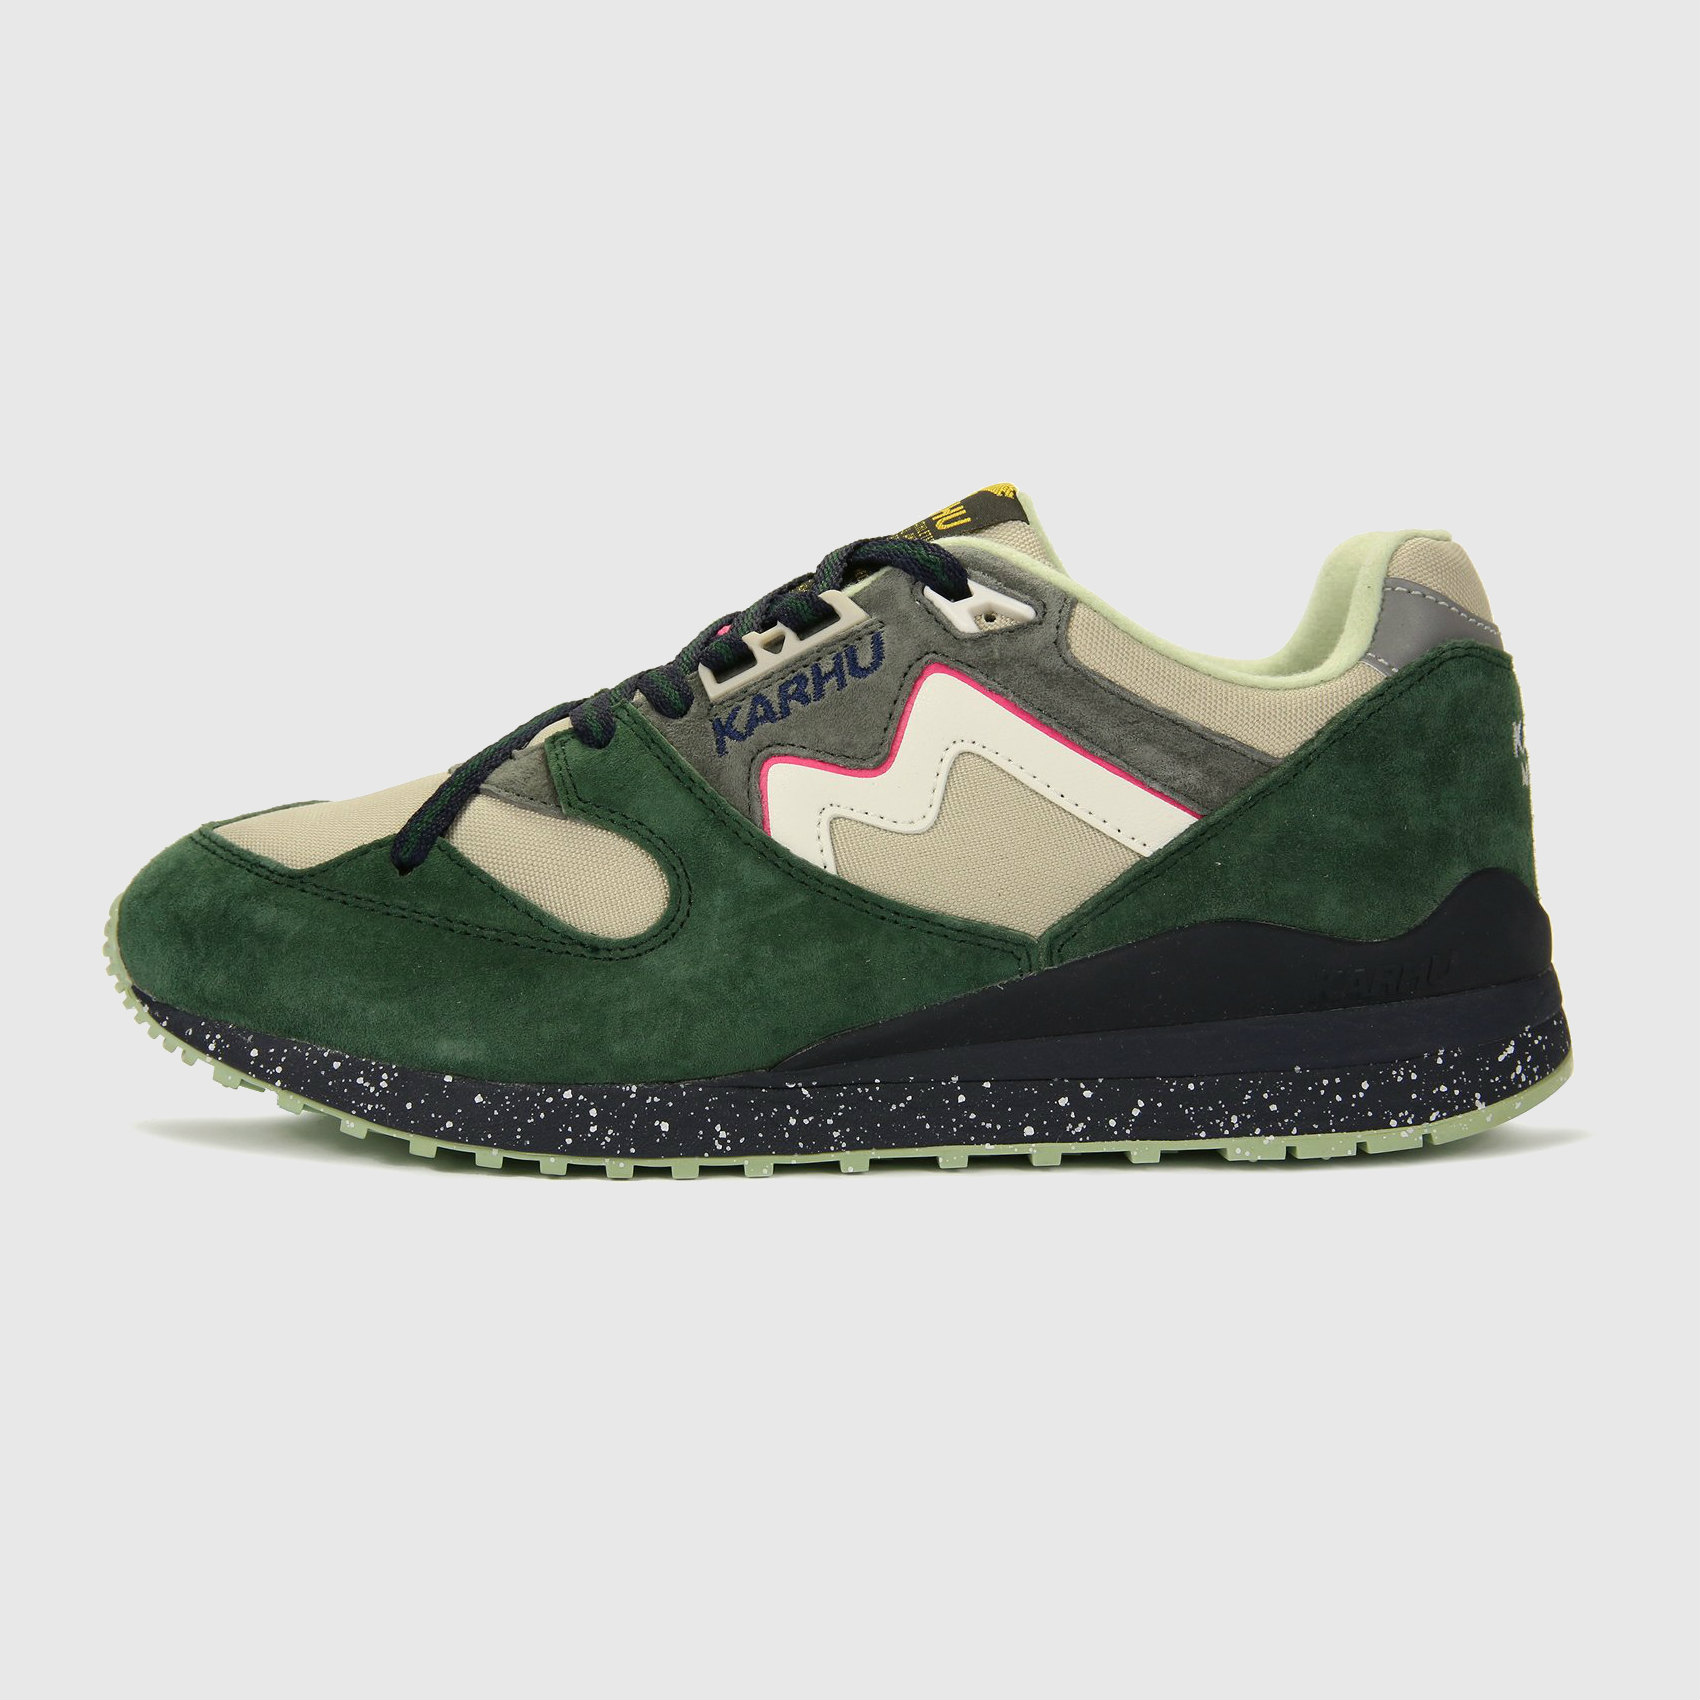 Karhu Synchron Classic Winter - June Bug / Peyote